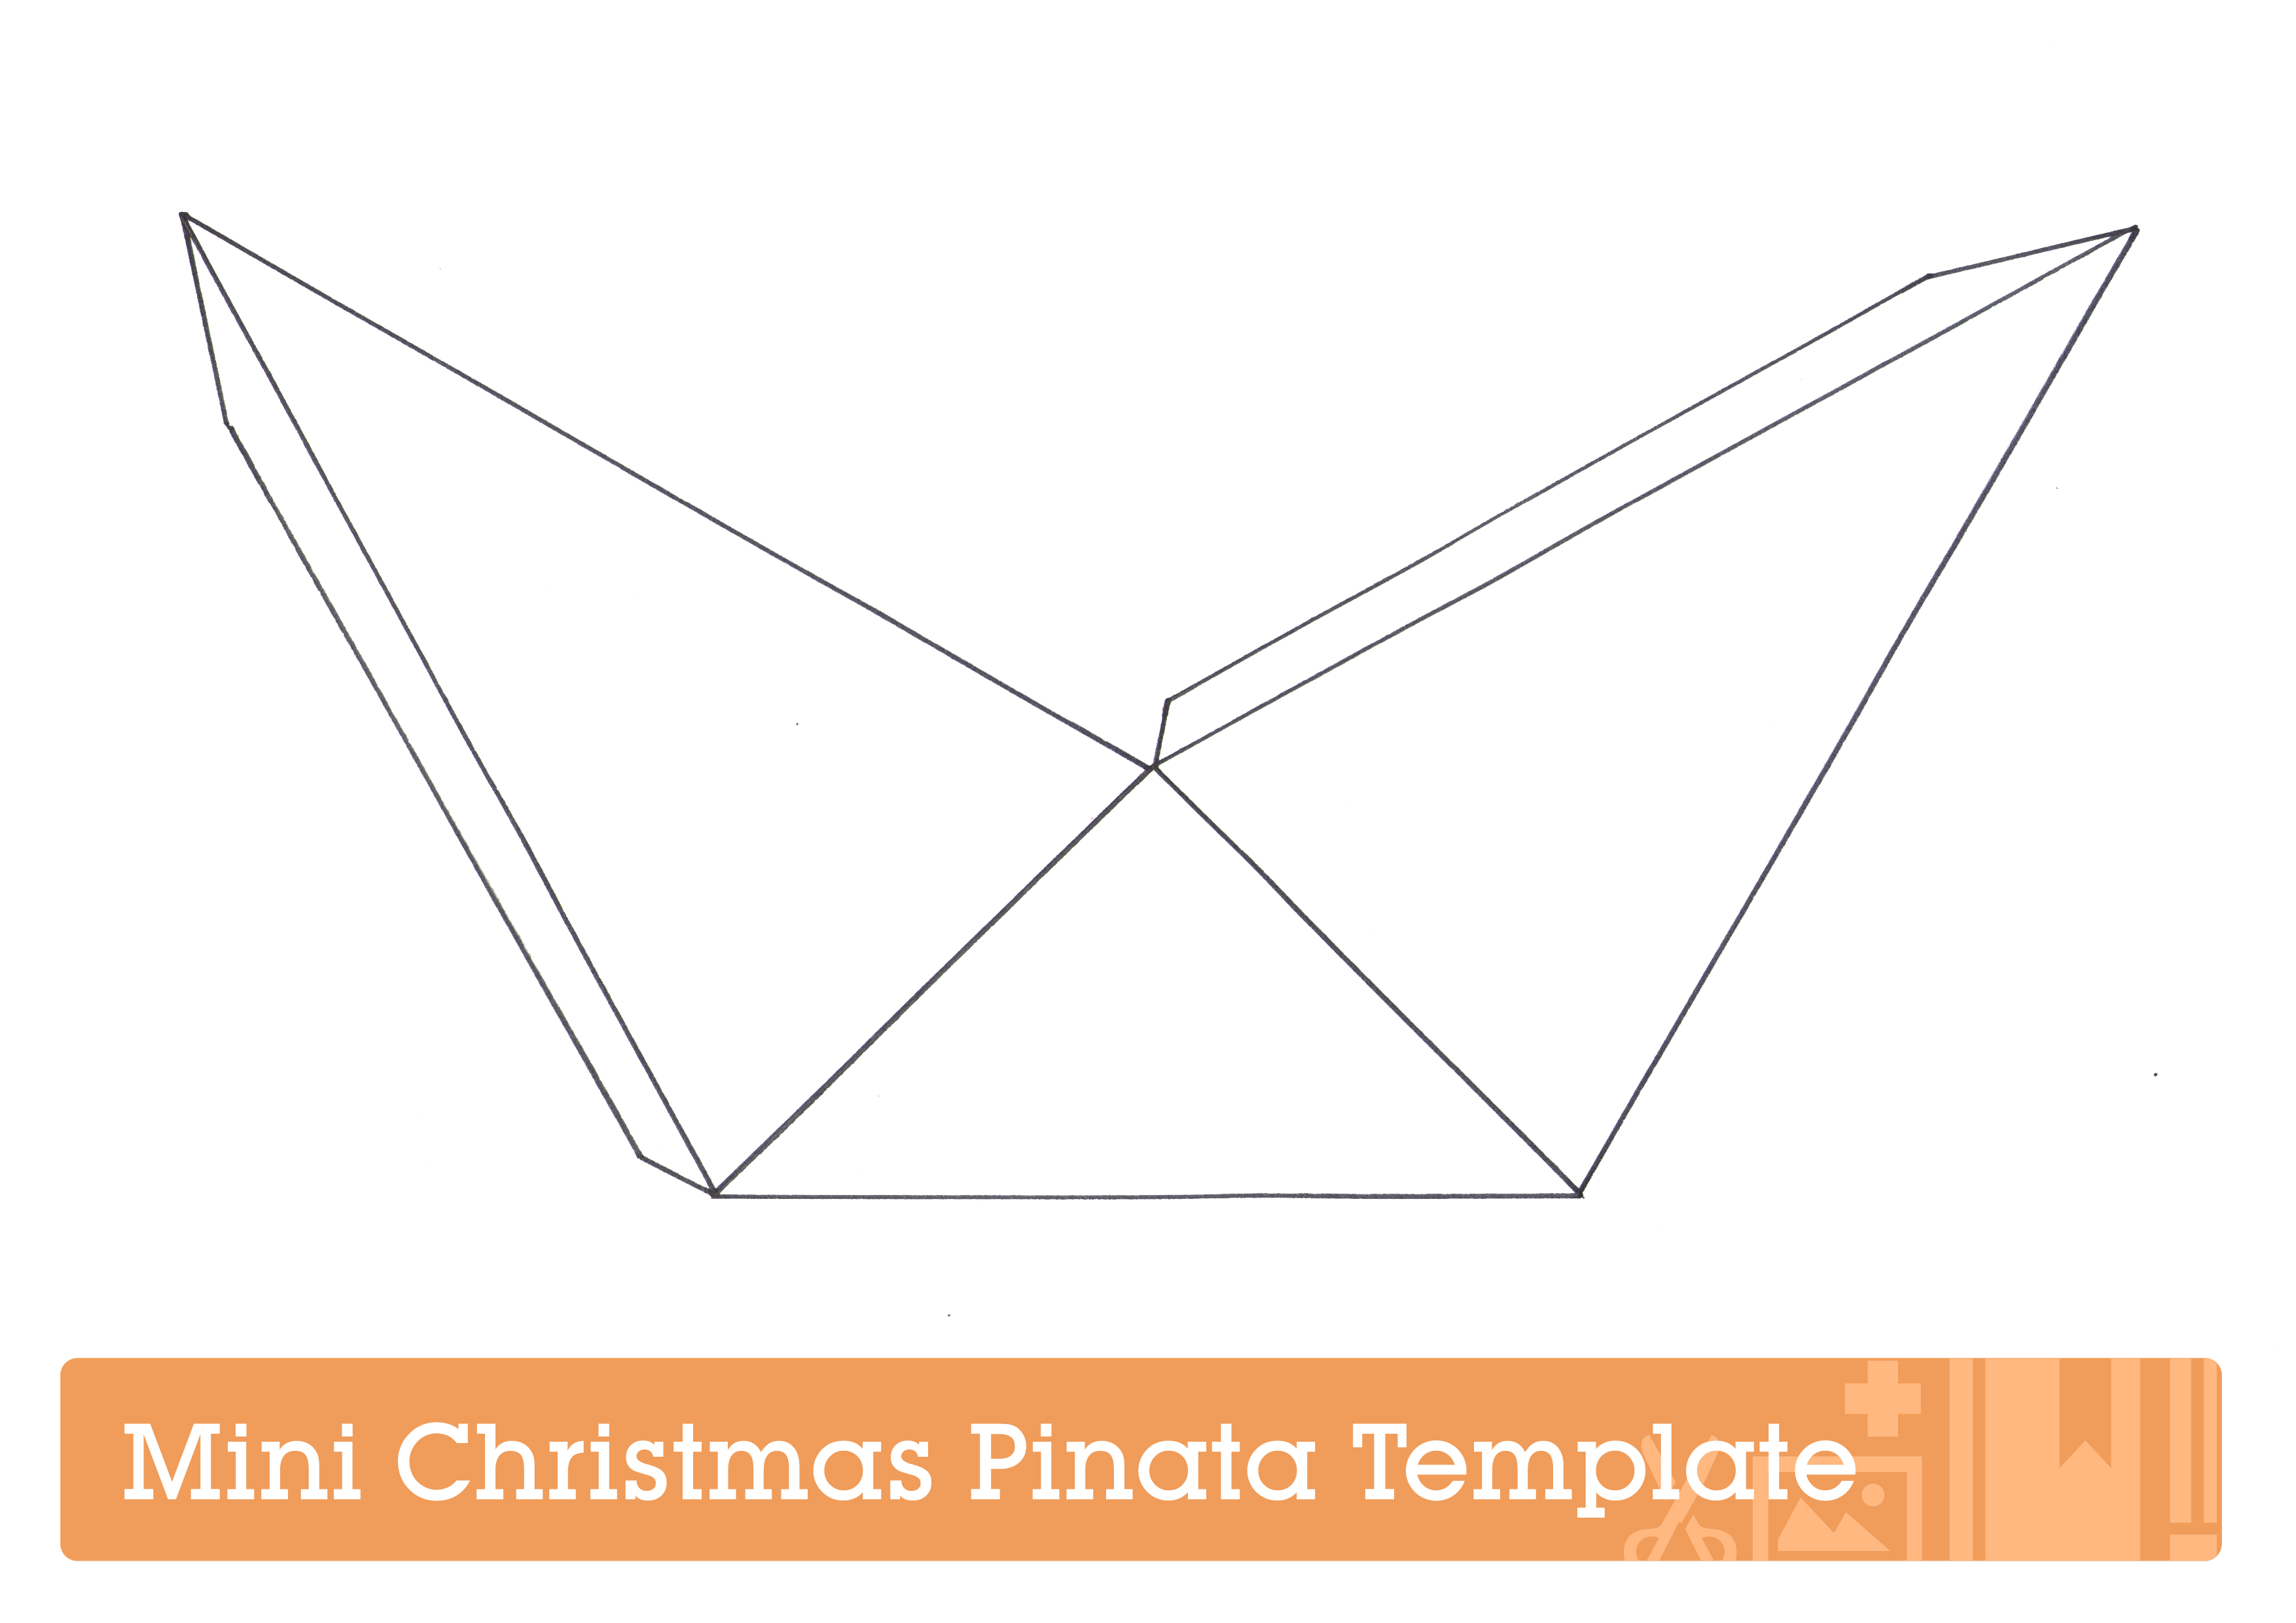 Piñata template for Mini Christmas Piñata